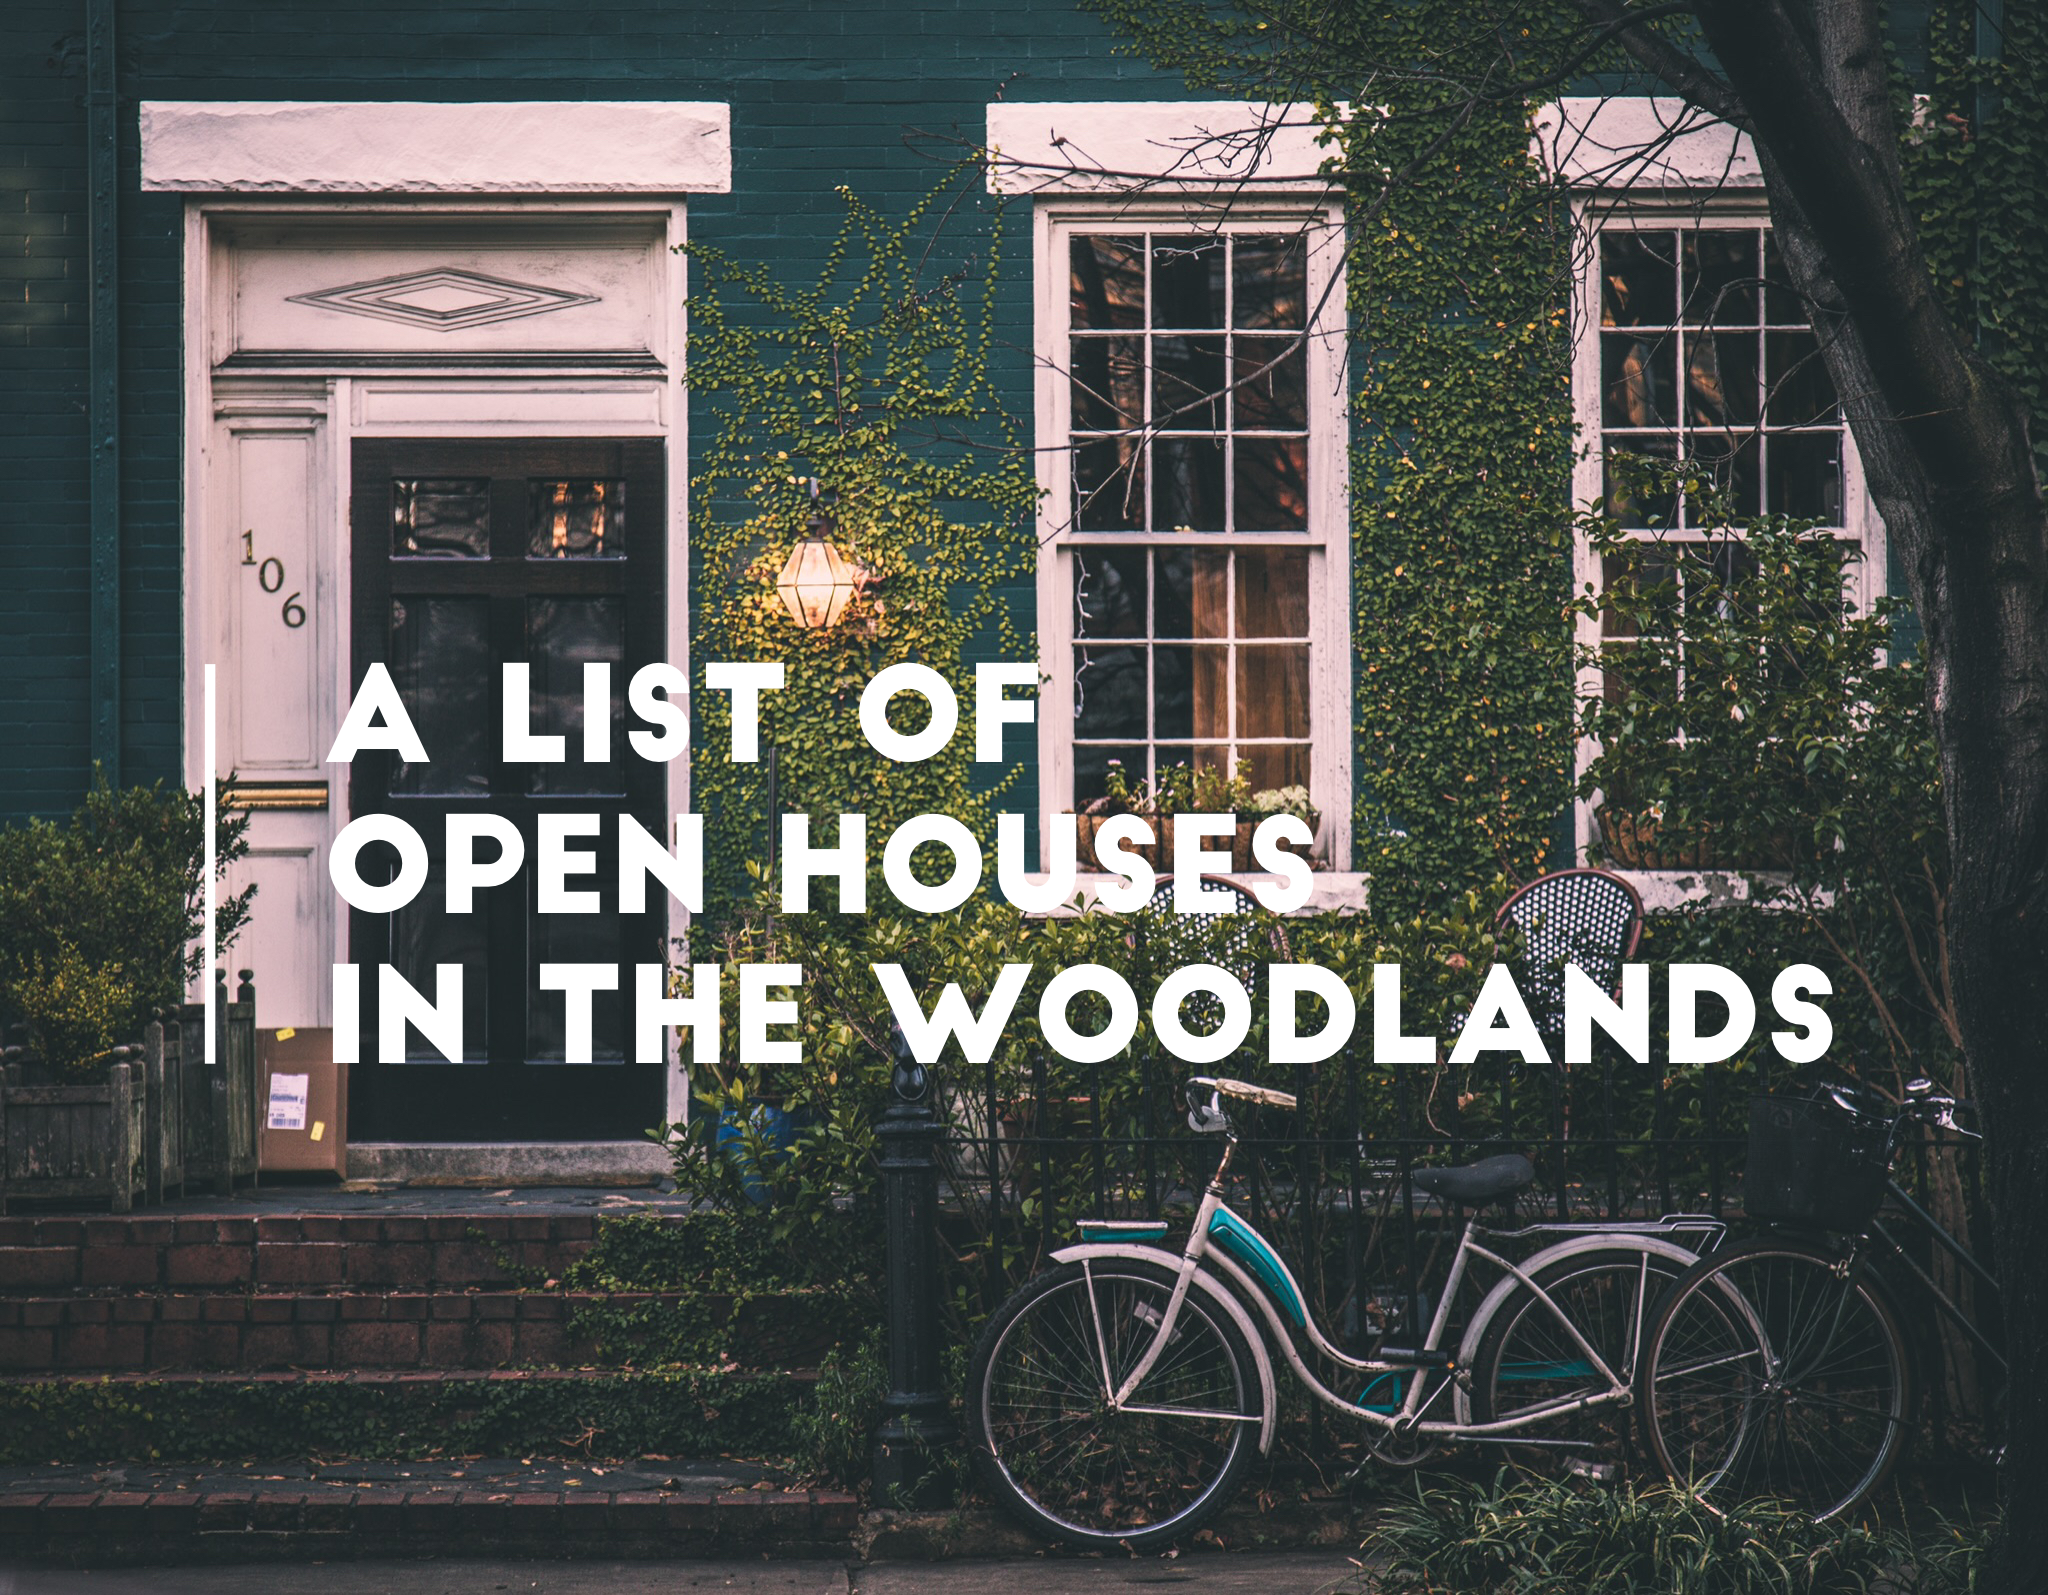 a list of open houses in the woodlands tx texas relocating real estate agent realtor brokerage jo & co realty group jordan schilleci